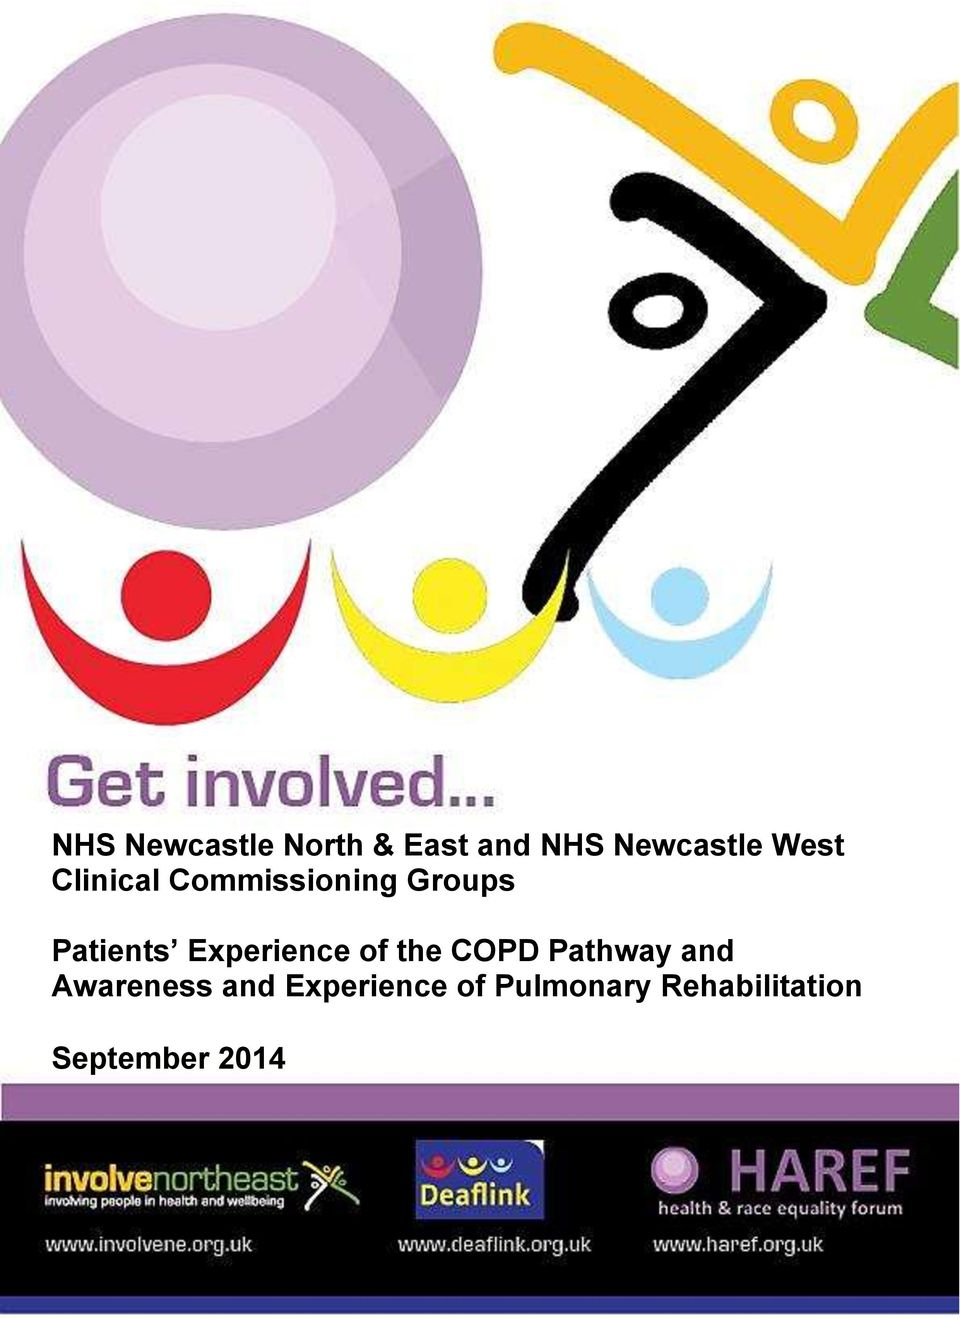 Experience of the COPD Pathway and Awareness